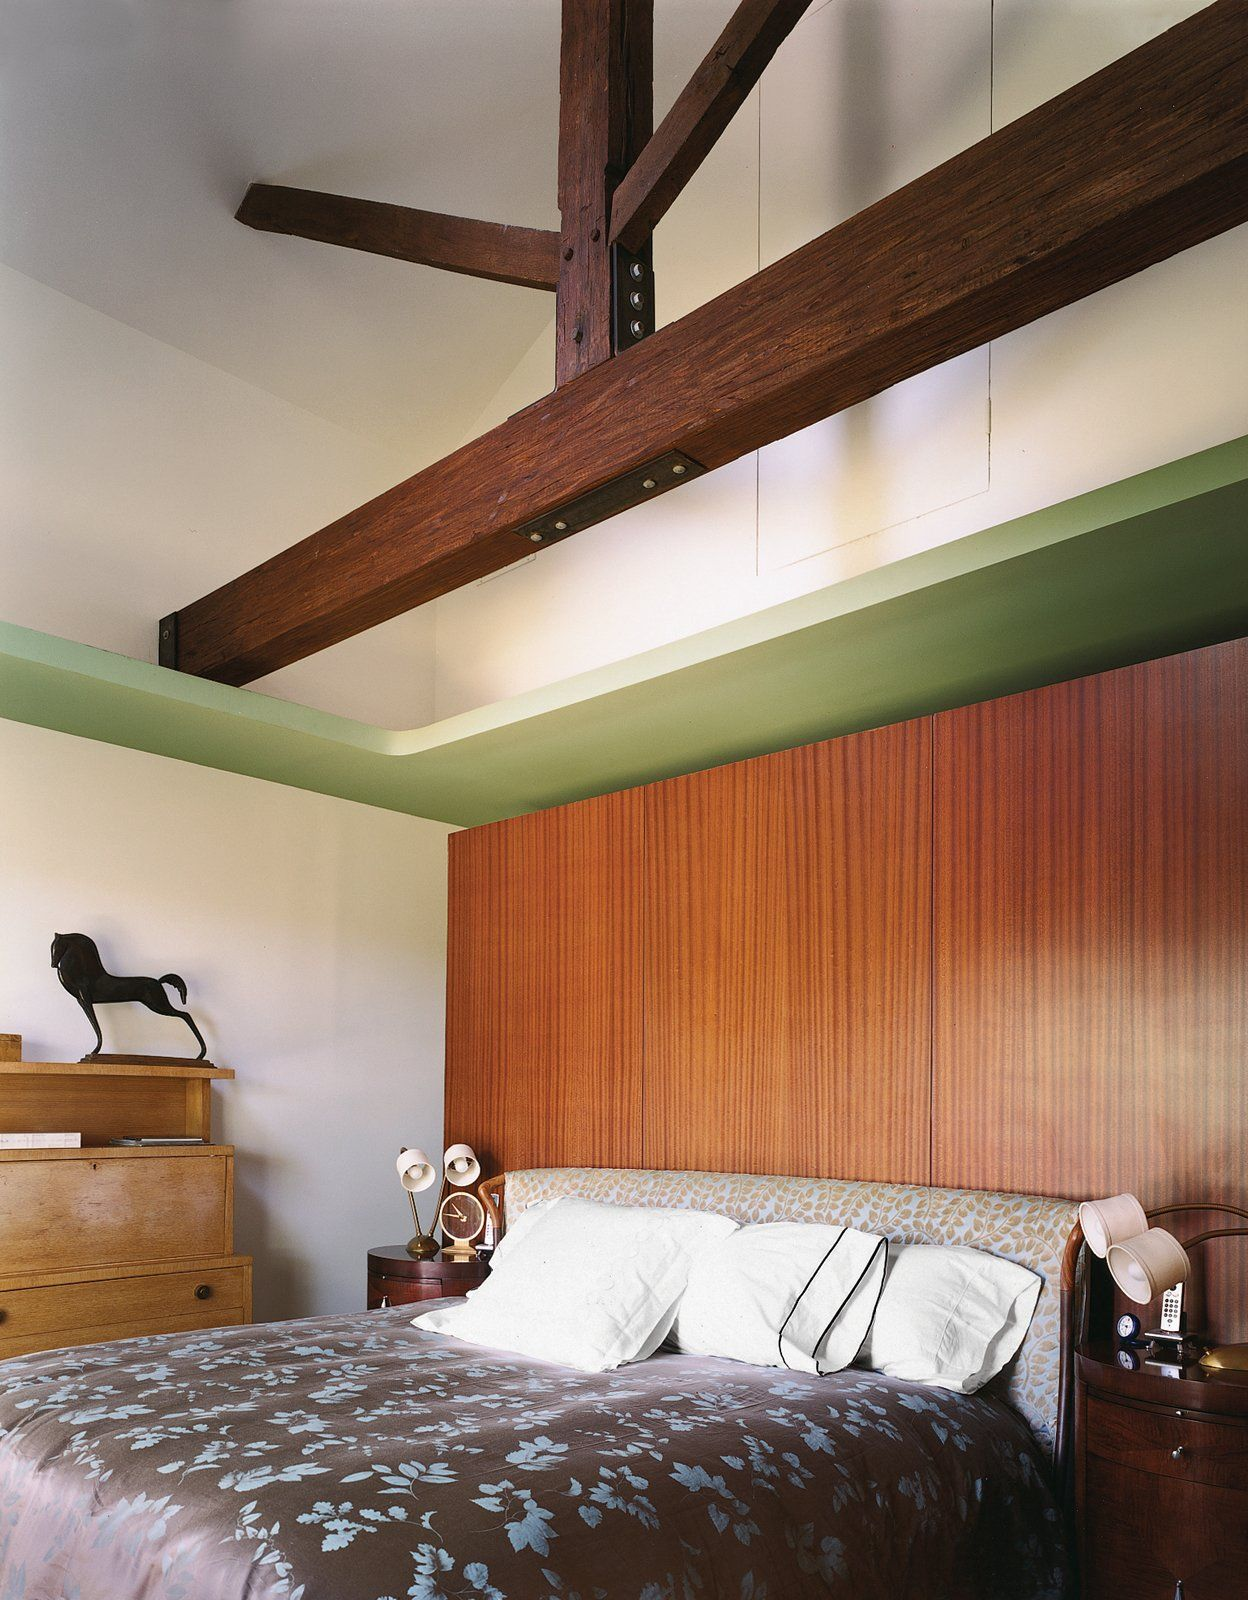 Modern Mahogany Bedroom Furniture: 25 Homes With Exposed Wood Beams: Rustic To Modern